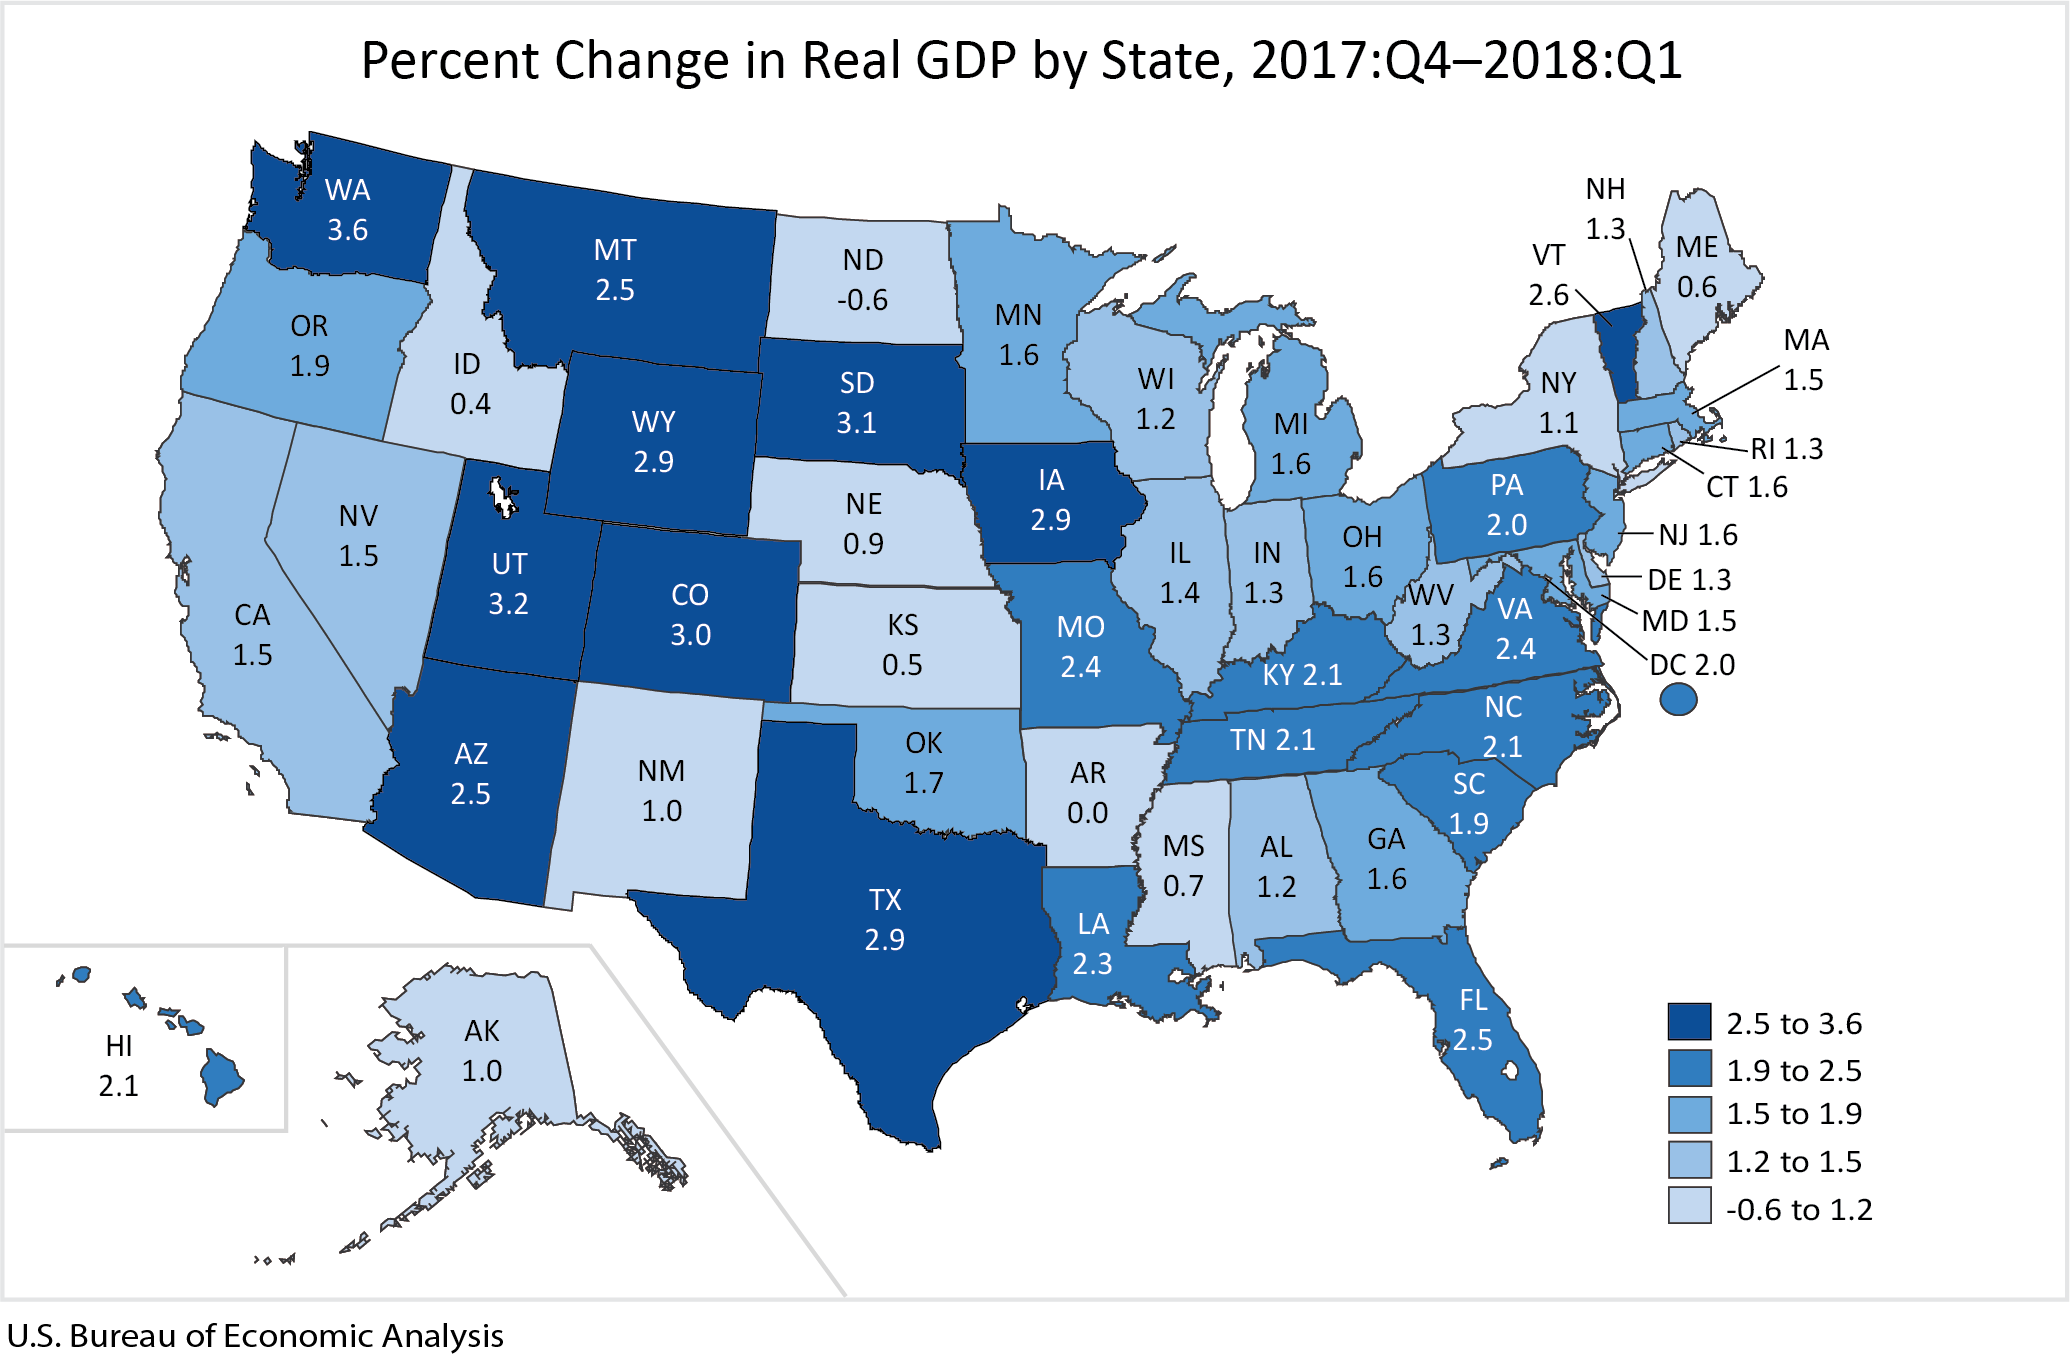 Percent change in real gdp by state 2017:Q4 - 2018:Q1